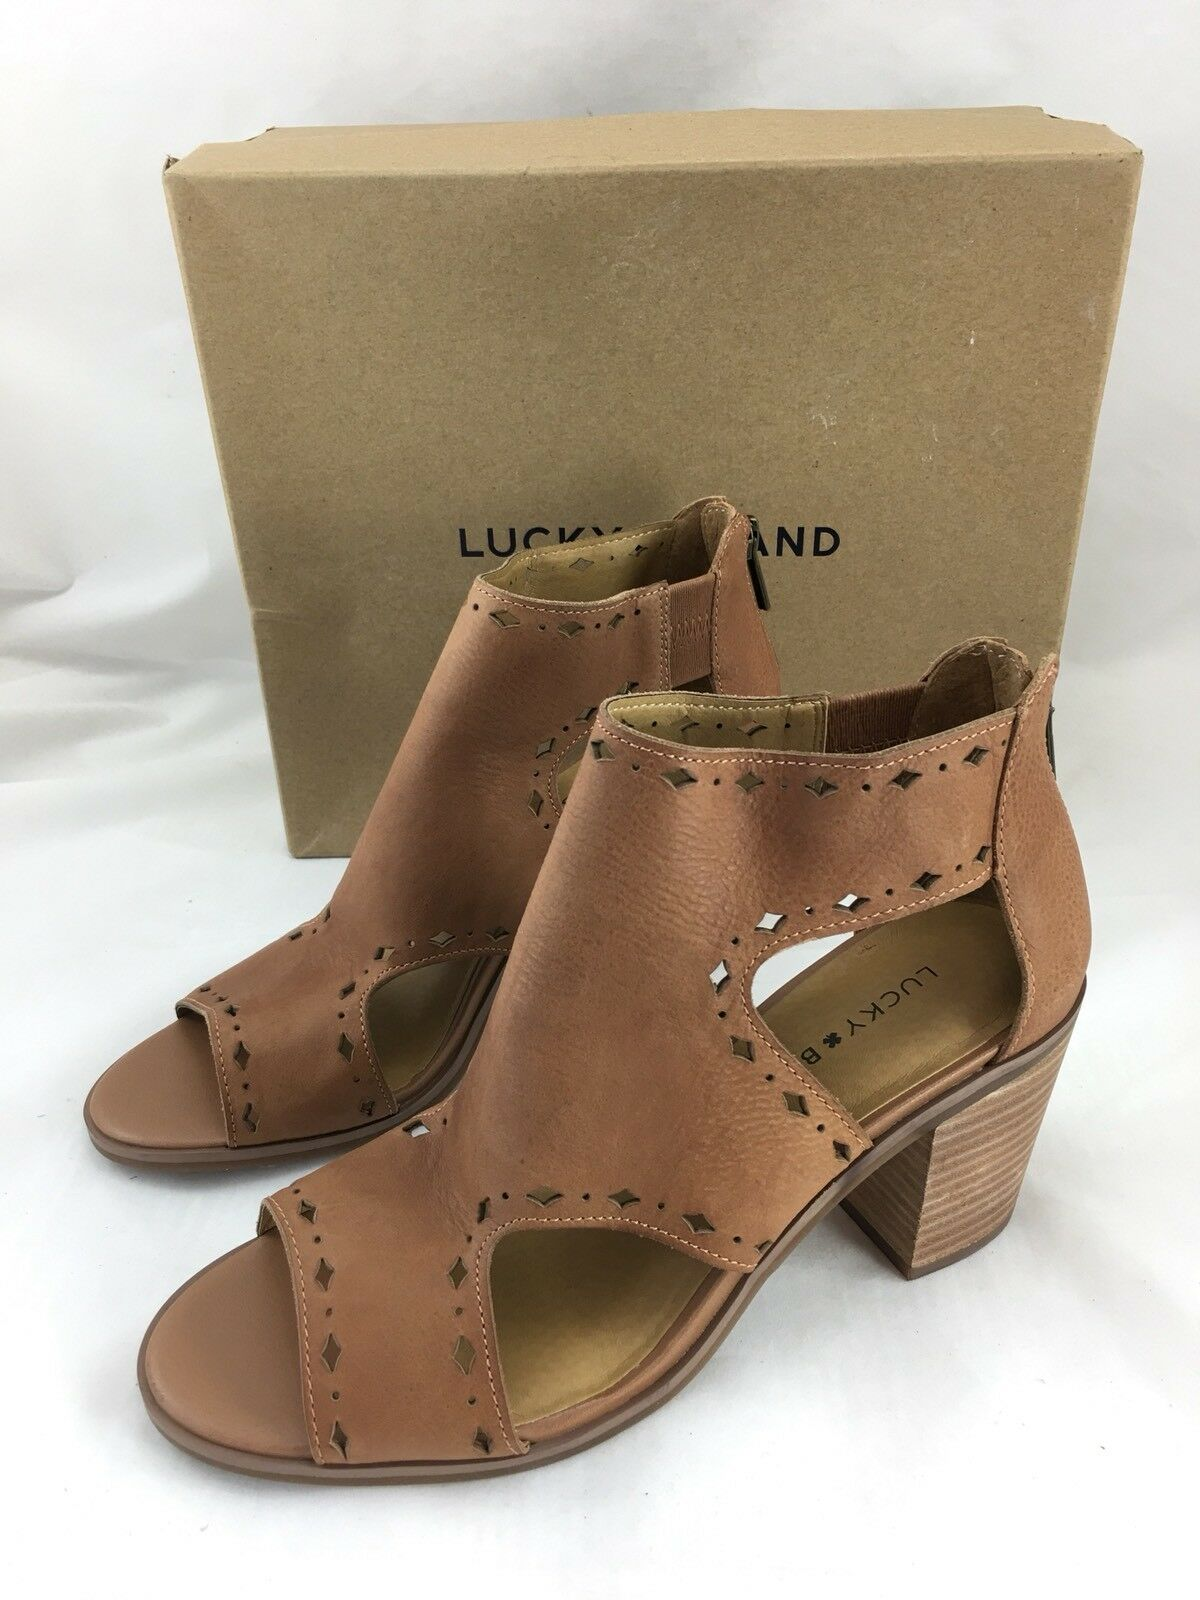 f4c5eac30b6 Lucky Brand Open Heeled Sandal Leather Sz 8.5 Toe Brown opqave2817-Women s  Sandals